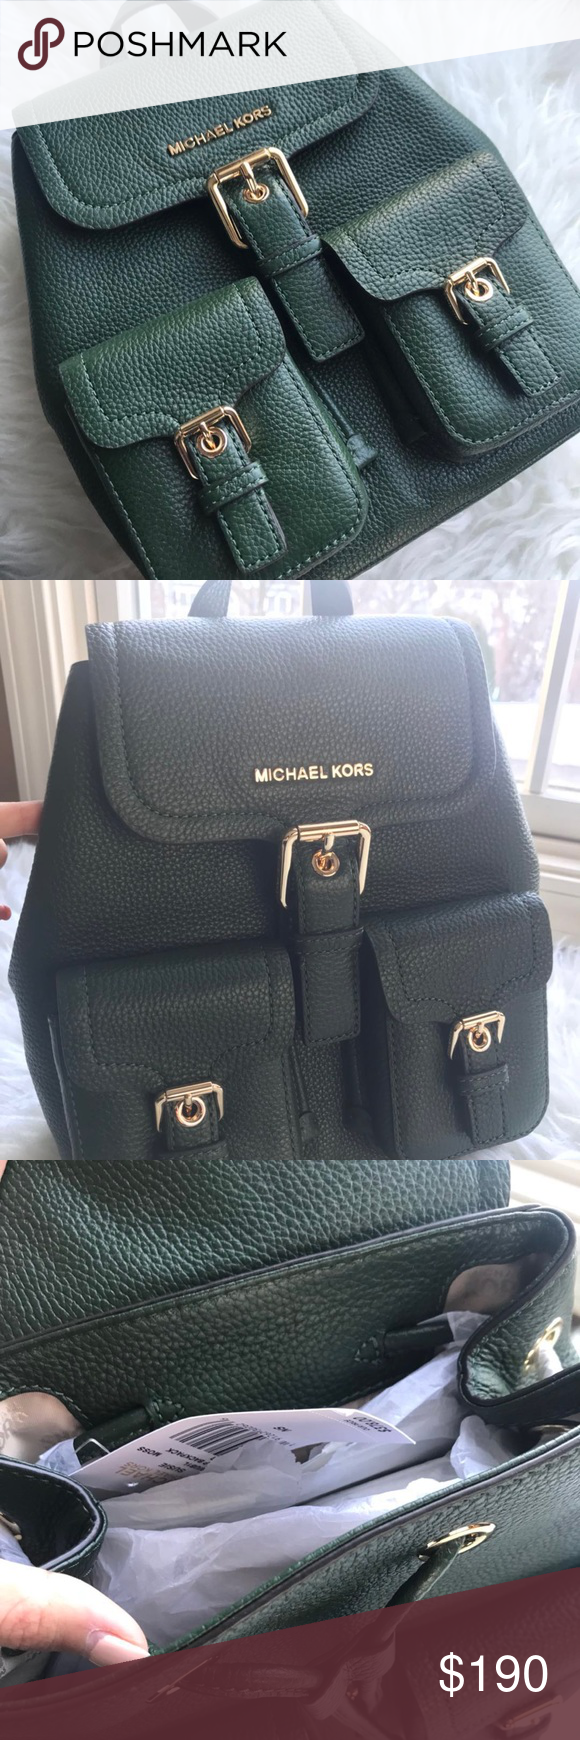 b27f6d61f66414 Michael Kors Susie Small Flap Backpack Size: Small Style: Backpack Closure:  Flap Material: Leather Michael Kors Bags Backpacks